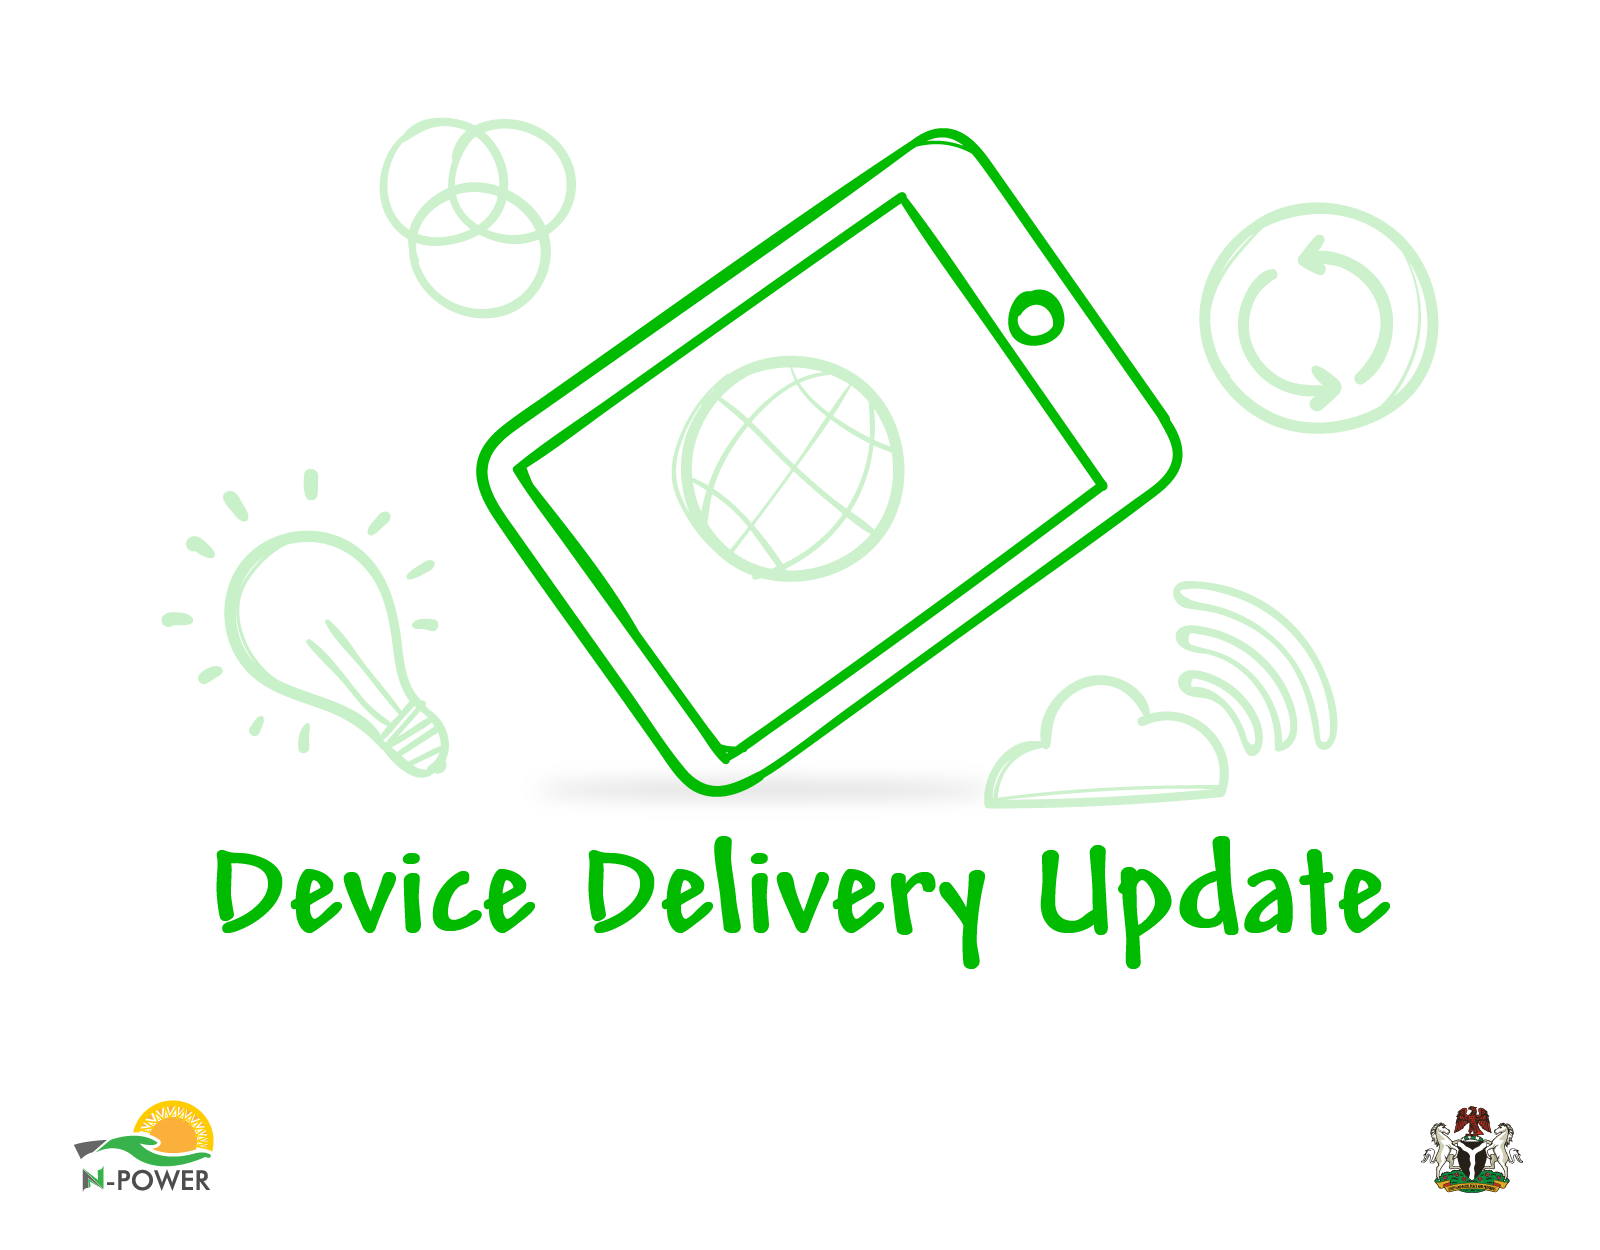 NPower Device Delivery Update, September 8th, 2017 - N-Power